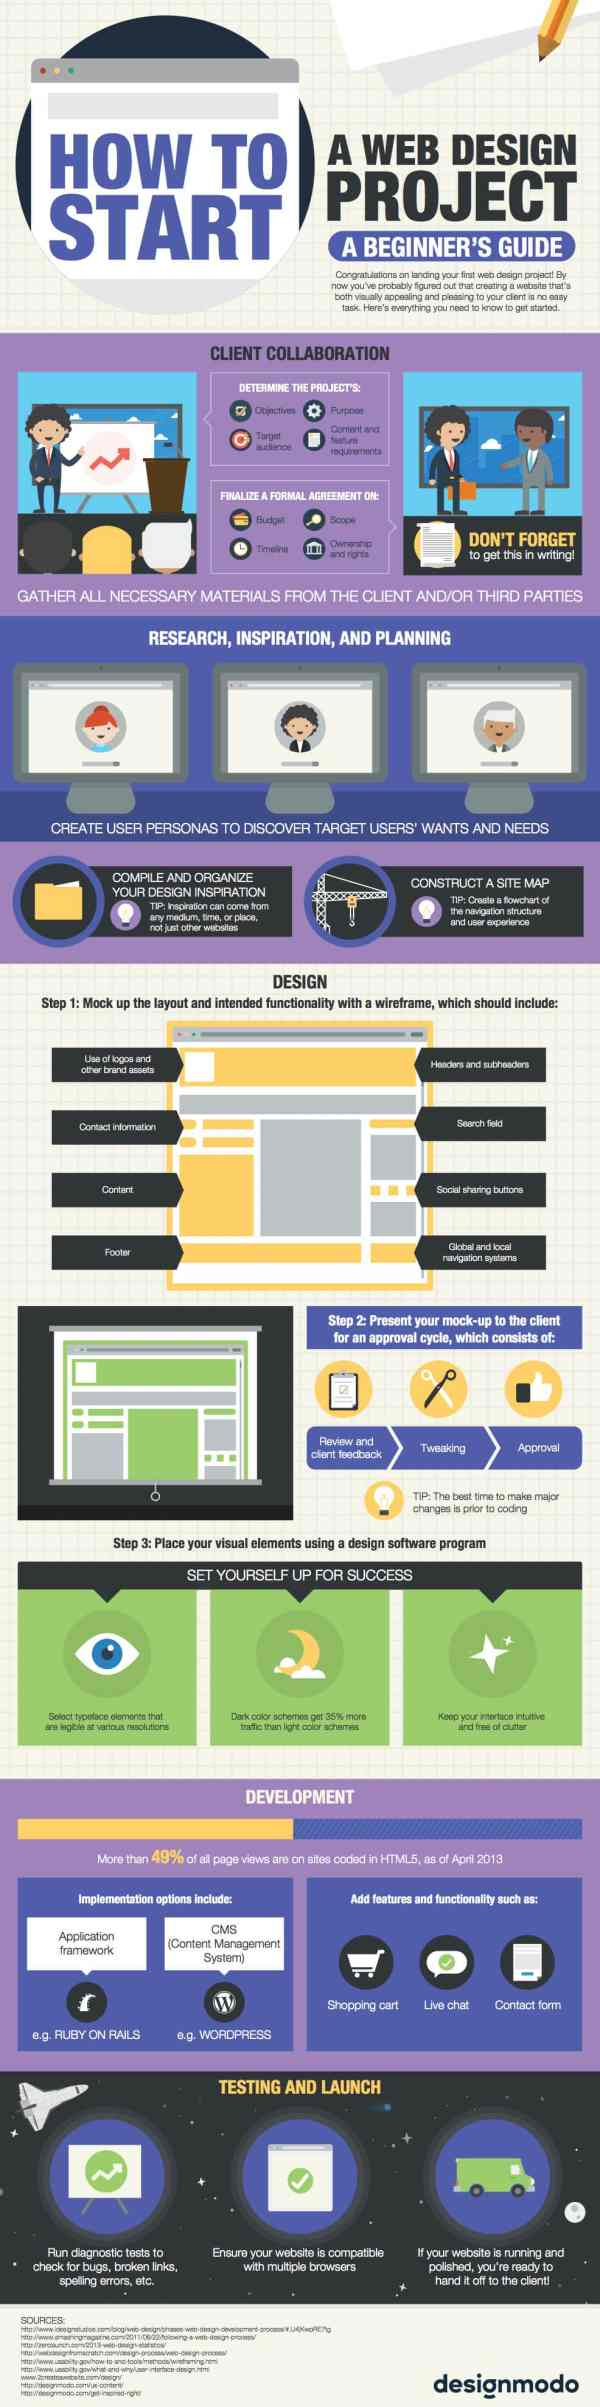 How to Start a Web Design Project